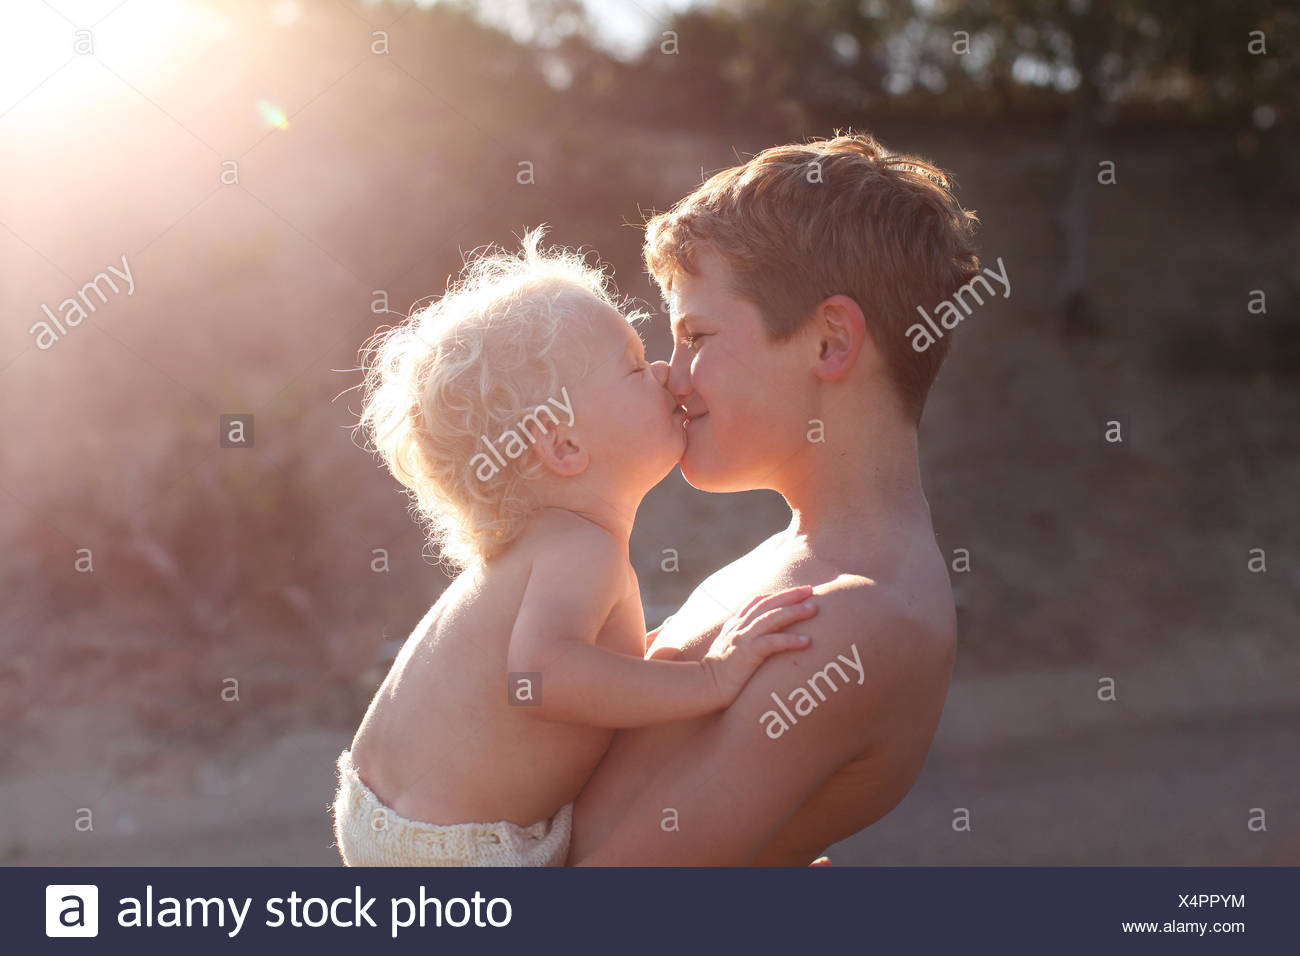 Two brothers kissing - Stock Image